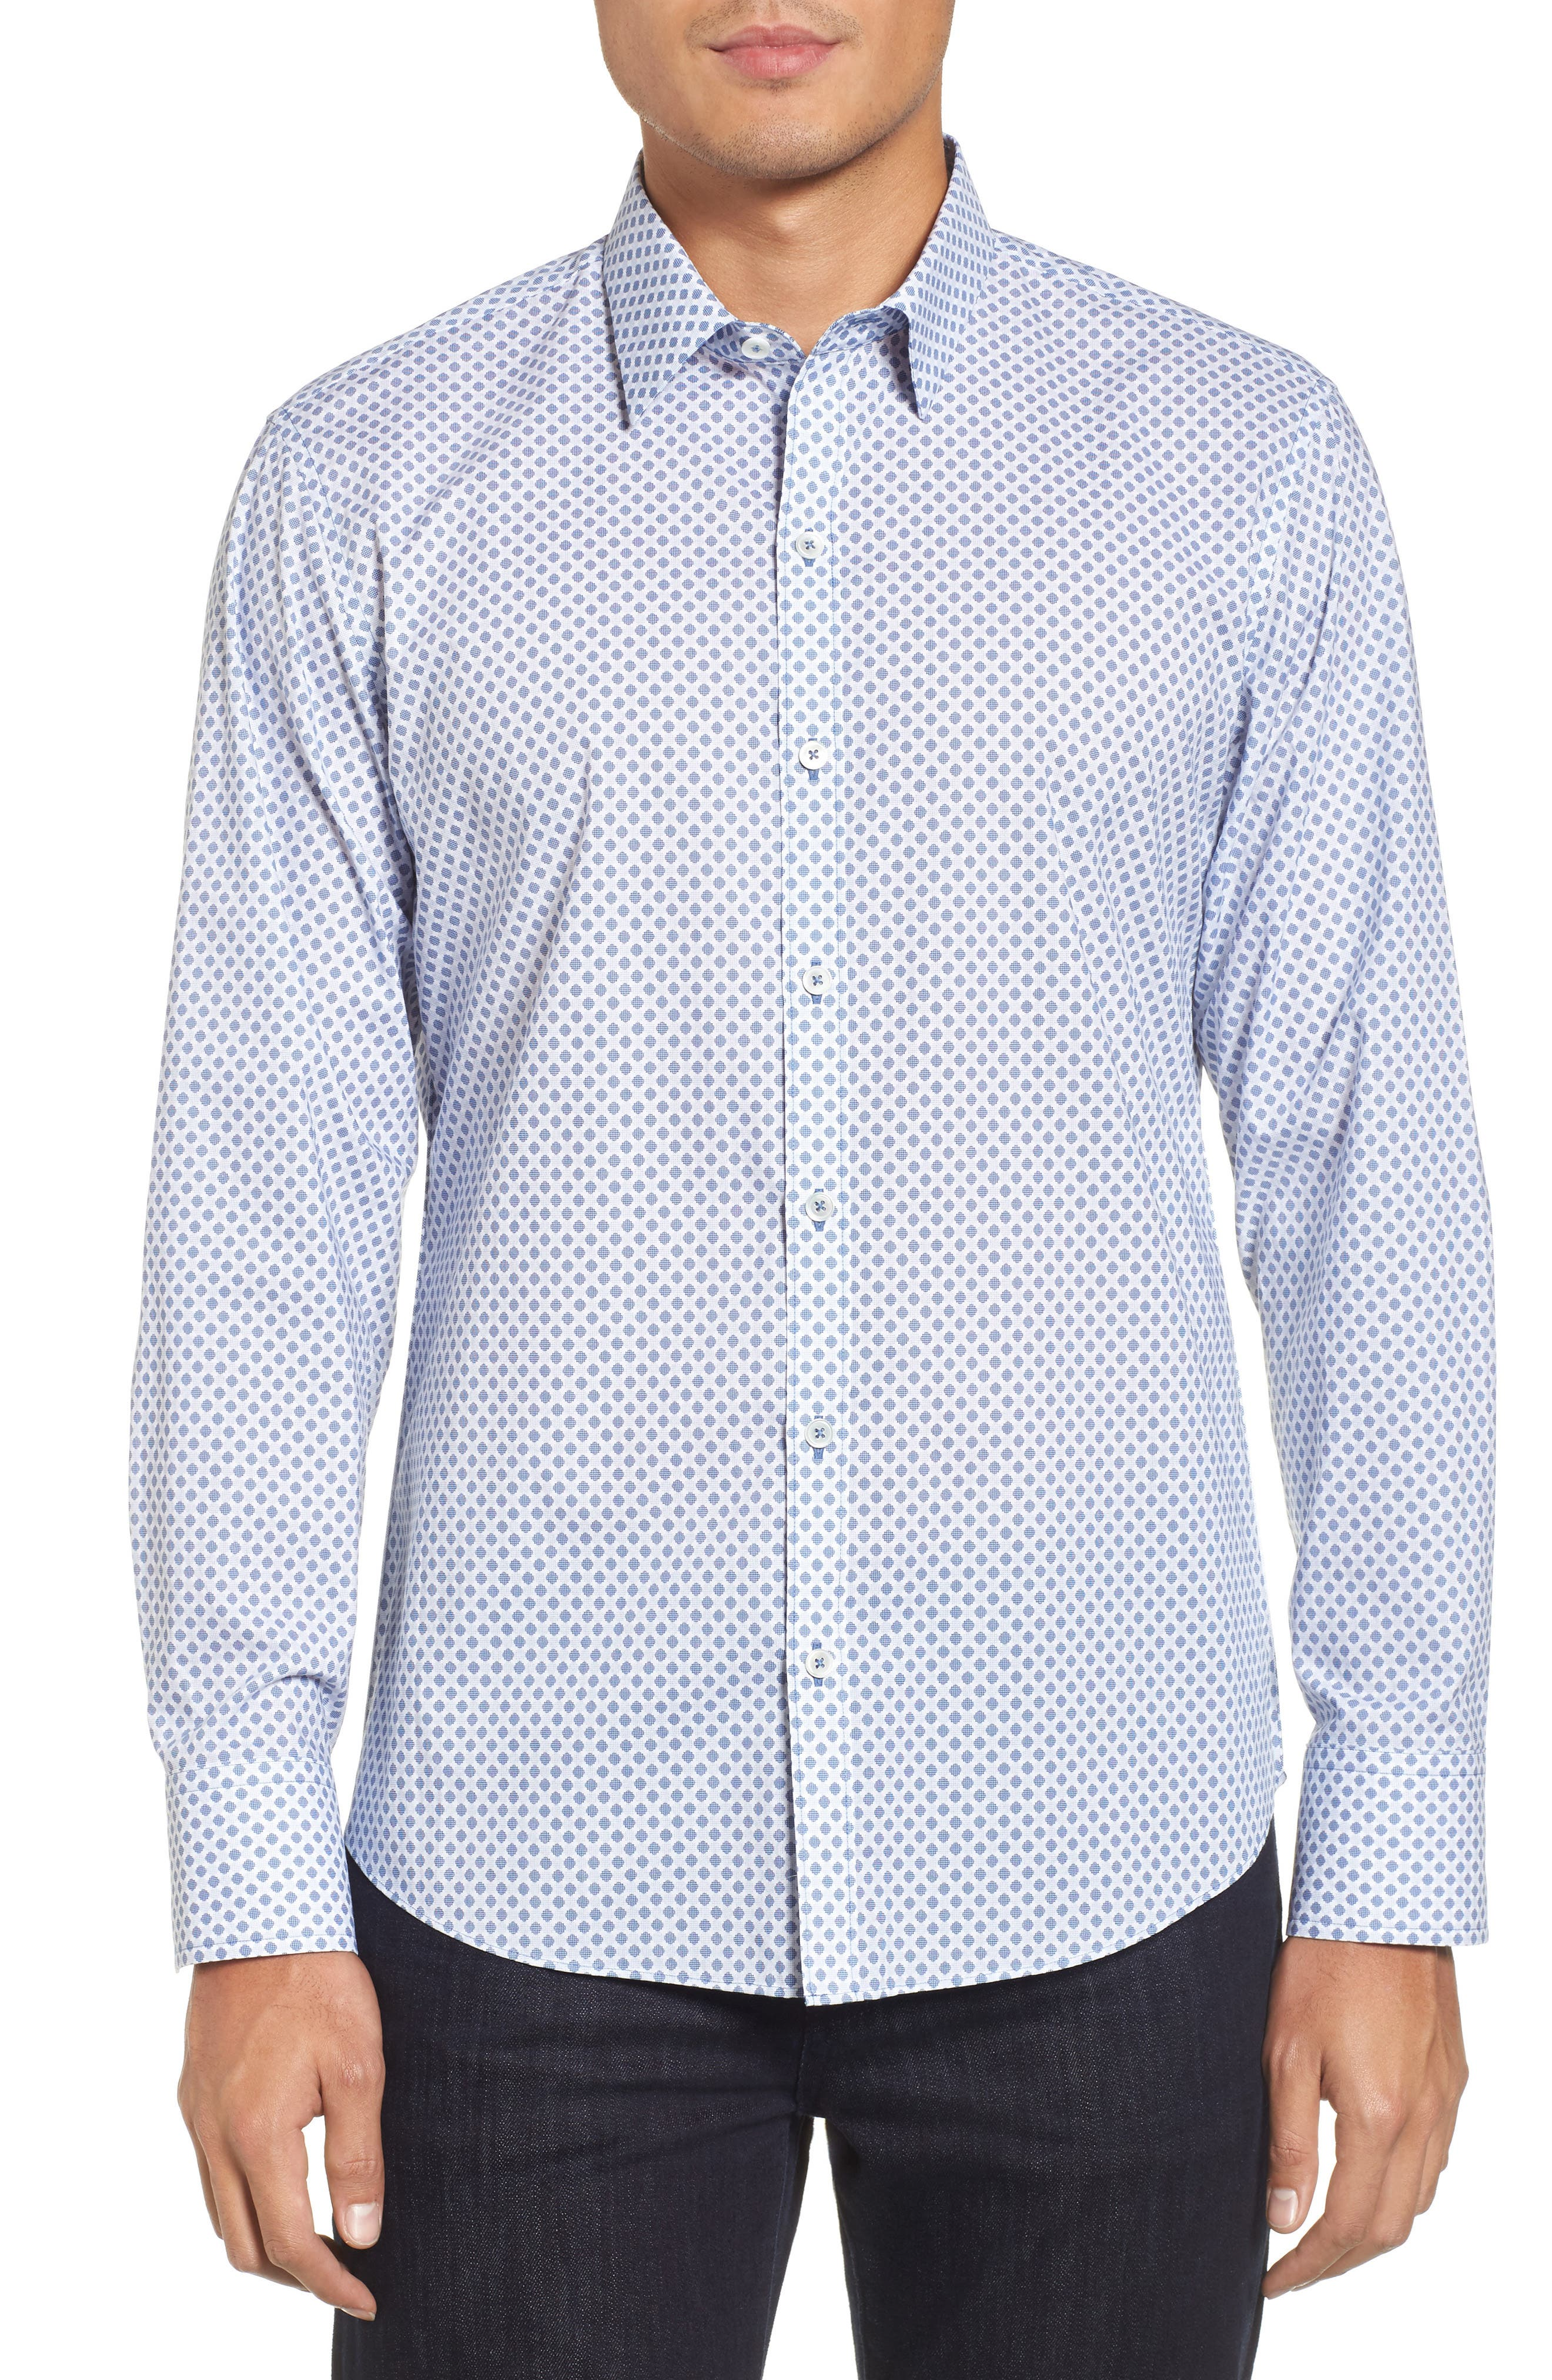 Obi Slim Fit Circle Print Sport Shirt,                         Main,                         color, NAVY